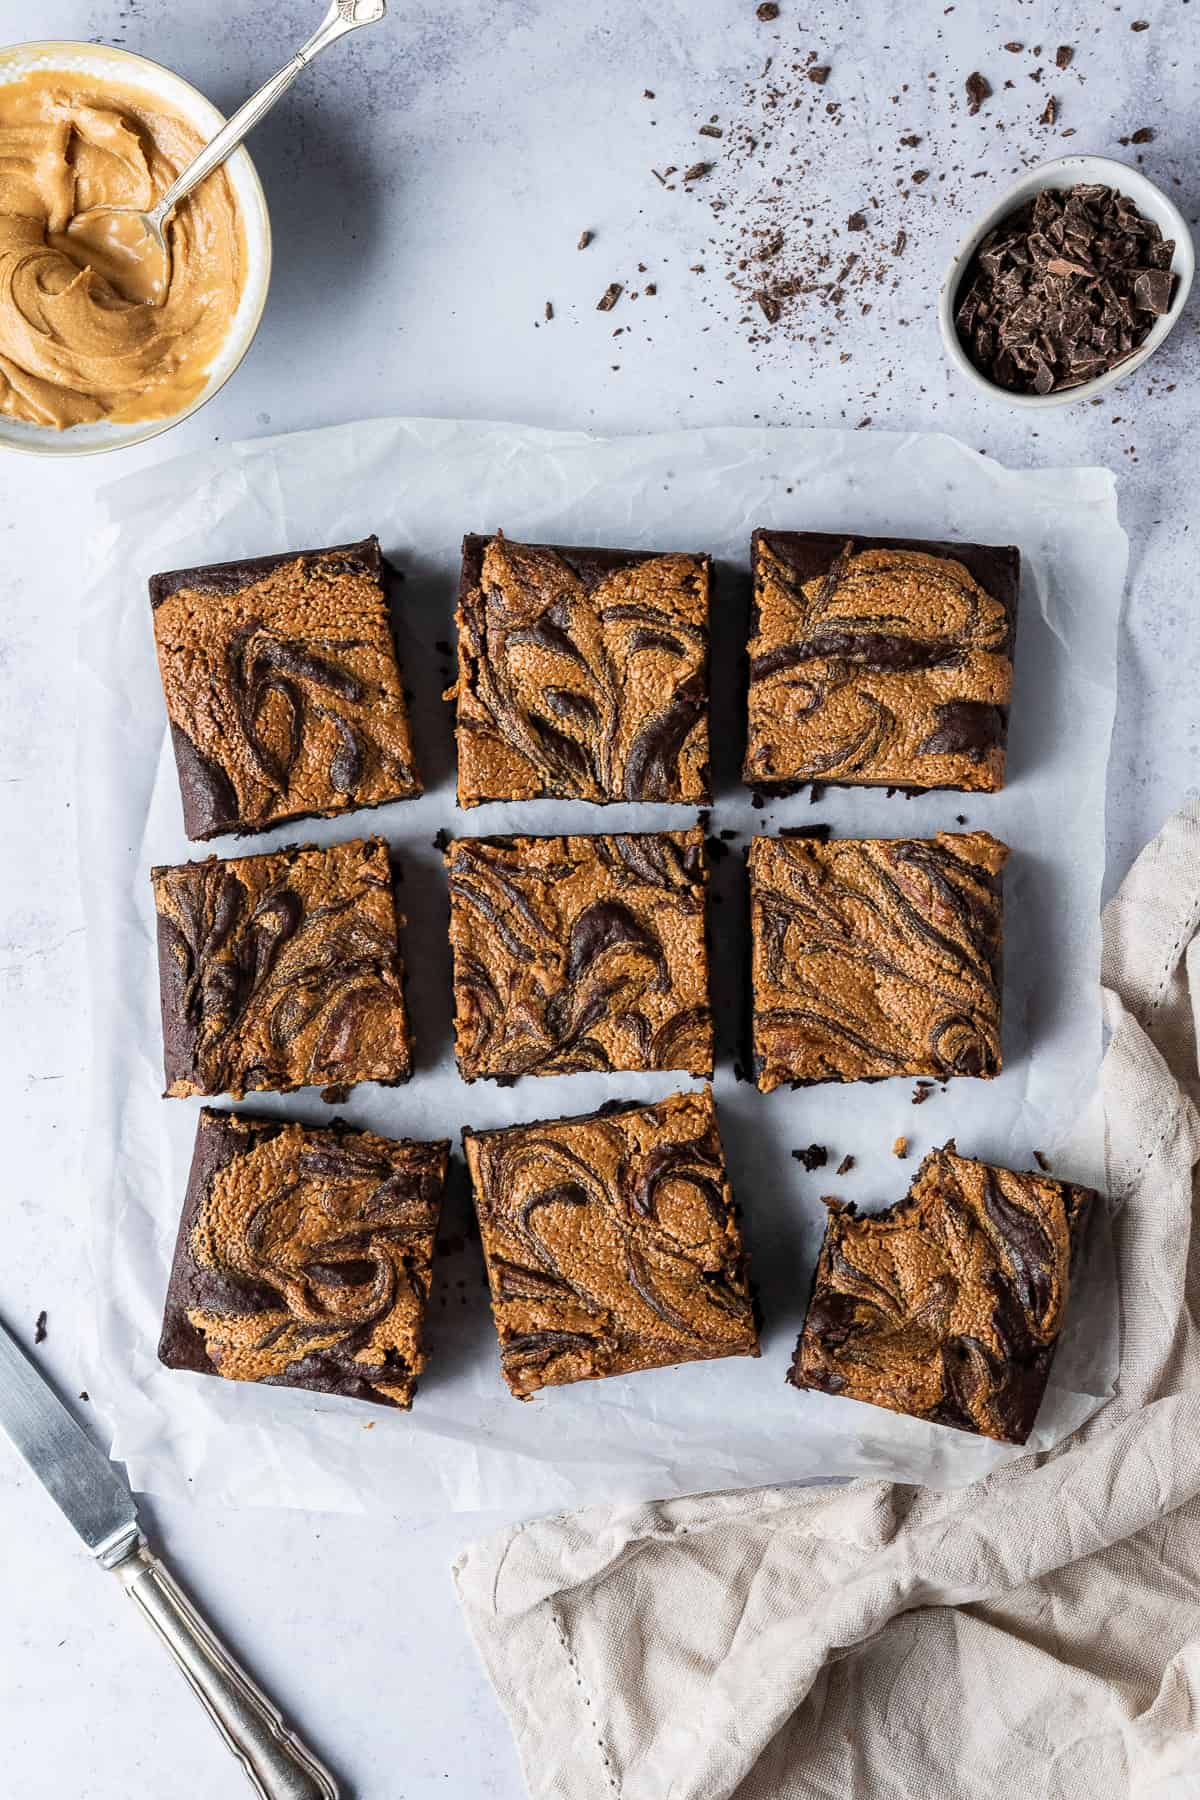 Squares of vegan peanut butter swirl brownie on a sheet of baking parchment with a cloth, a bowl of peanut butter and a bowl of chopped chocolate.